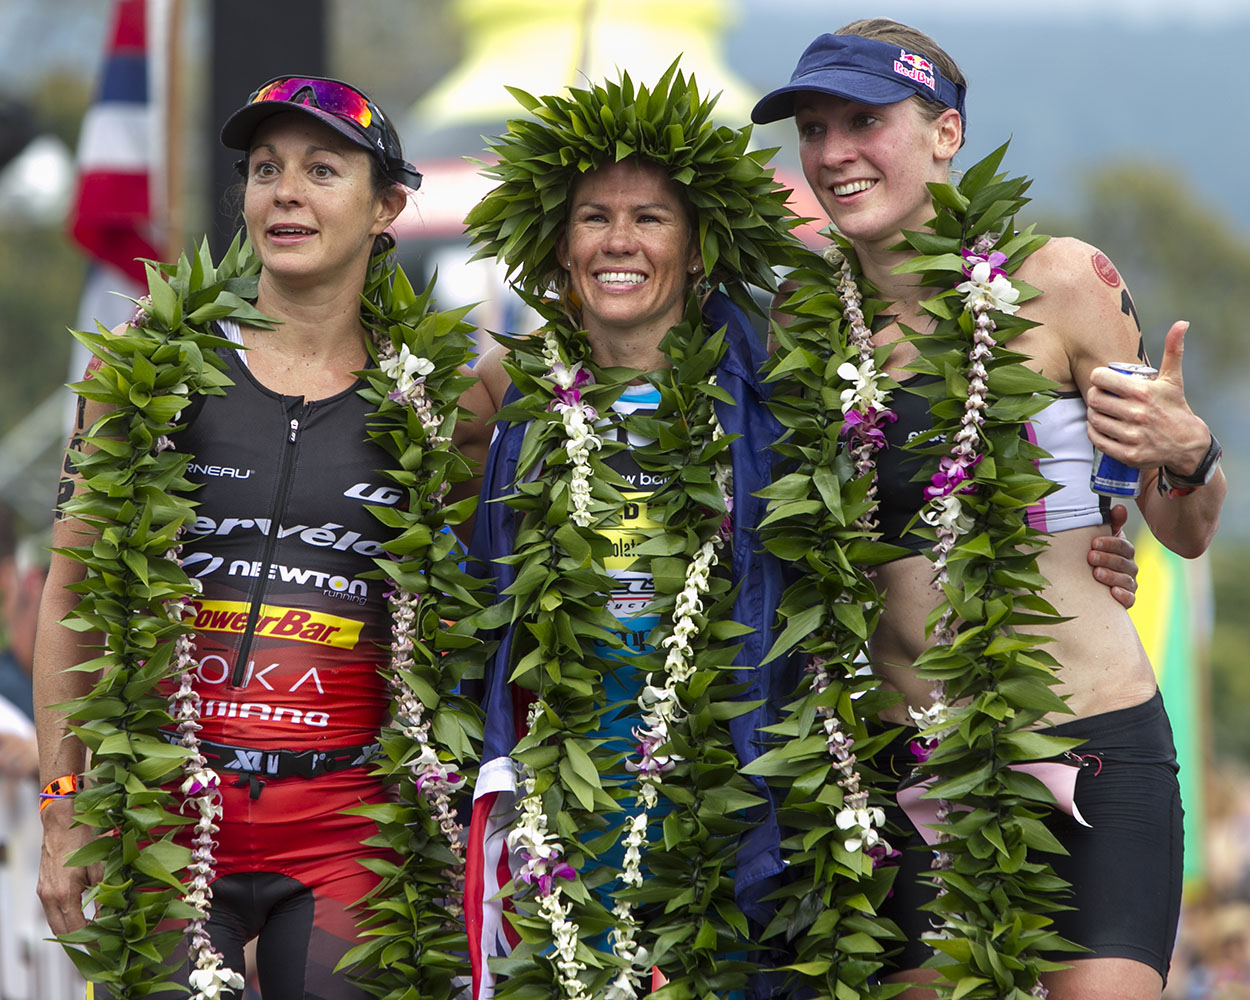 (Left to right) Rachel Joyce, Mirinda Carfrae and Daniela Ryf are seen at the finish line during the 2014 IRONMAN World Championship.